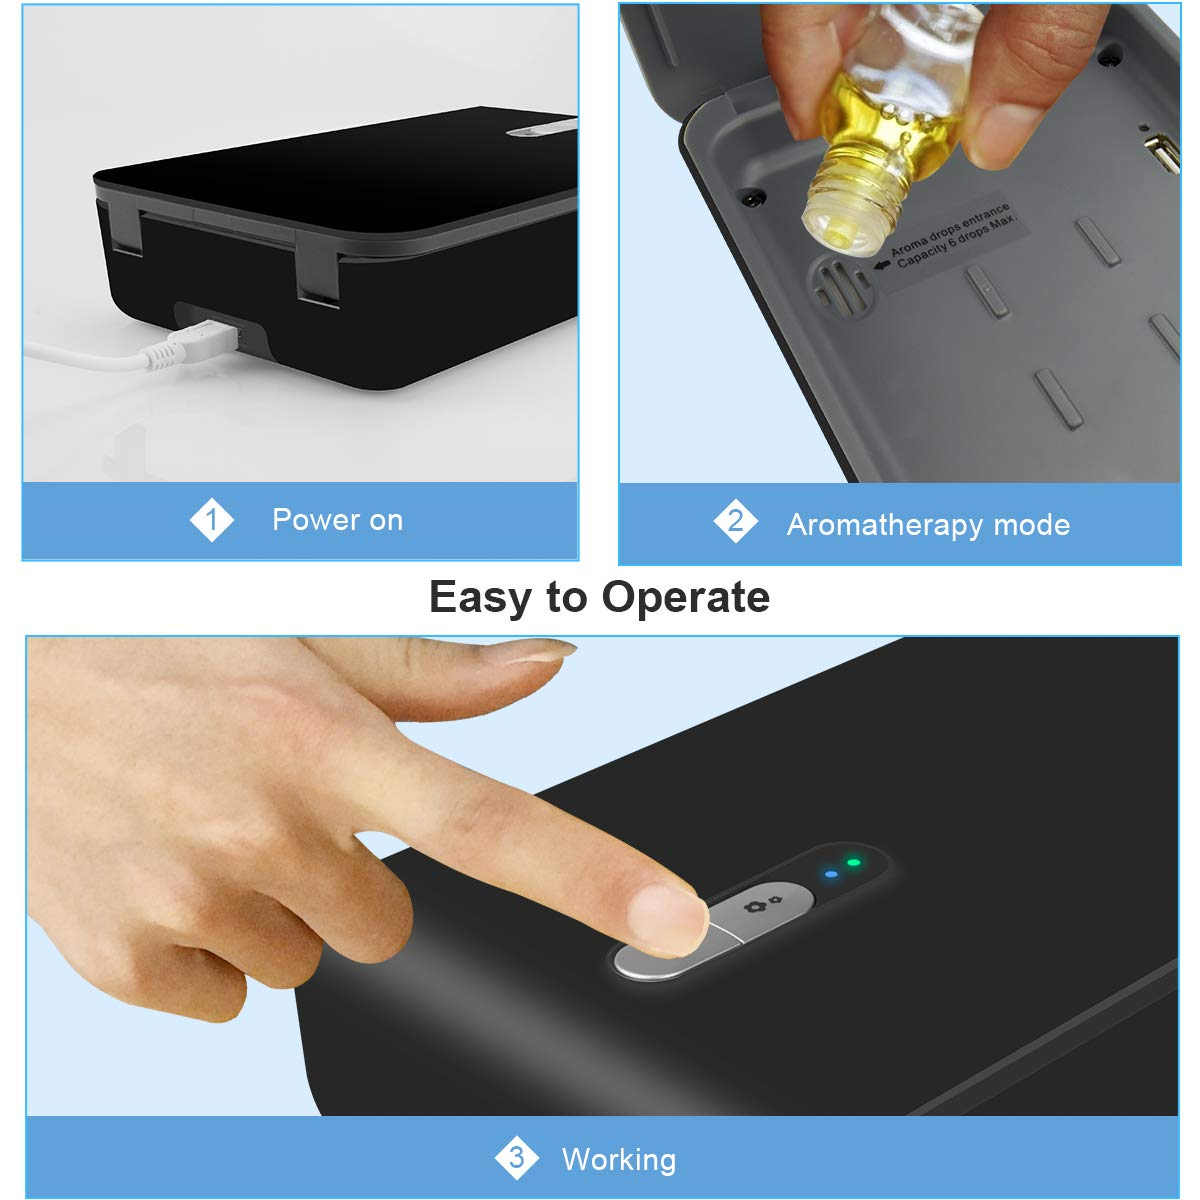 UV Phone Sanitizer, SOELAND Portable UV Smatrphone Sterilizer Cleaner Case  with Aromatherapy Function, Multi-use Cellphone Disinfection for Iphone